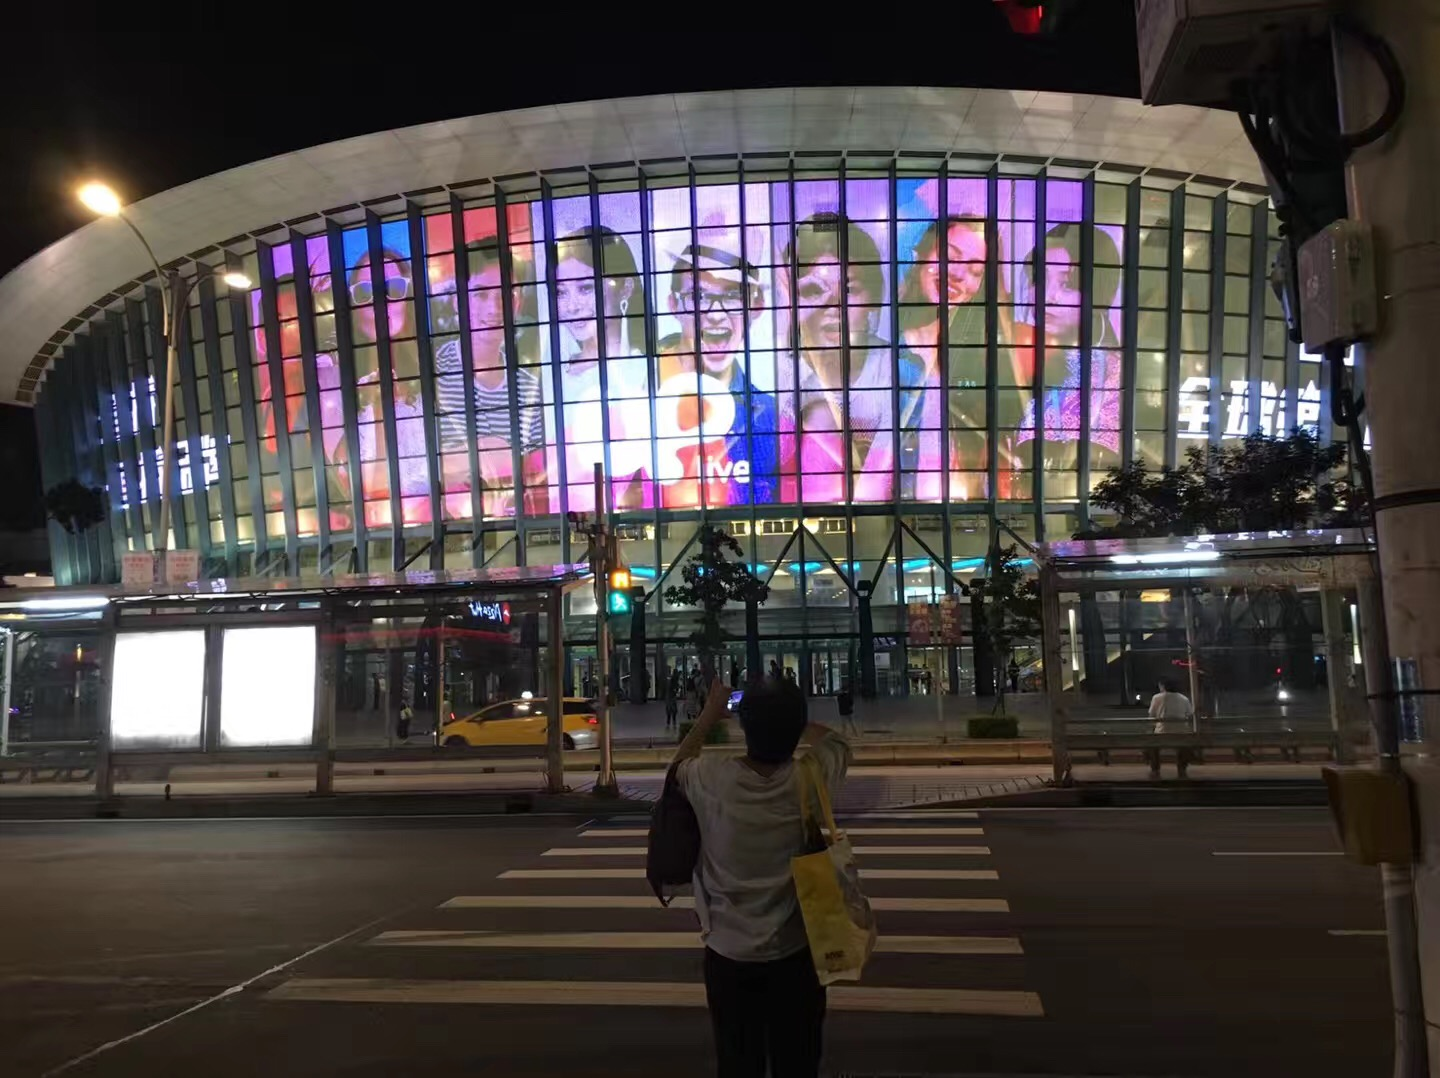 Uplive giant screen advertisement at the Taipei Arena at the end of 2018